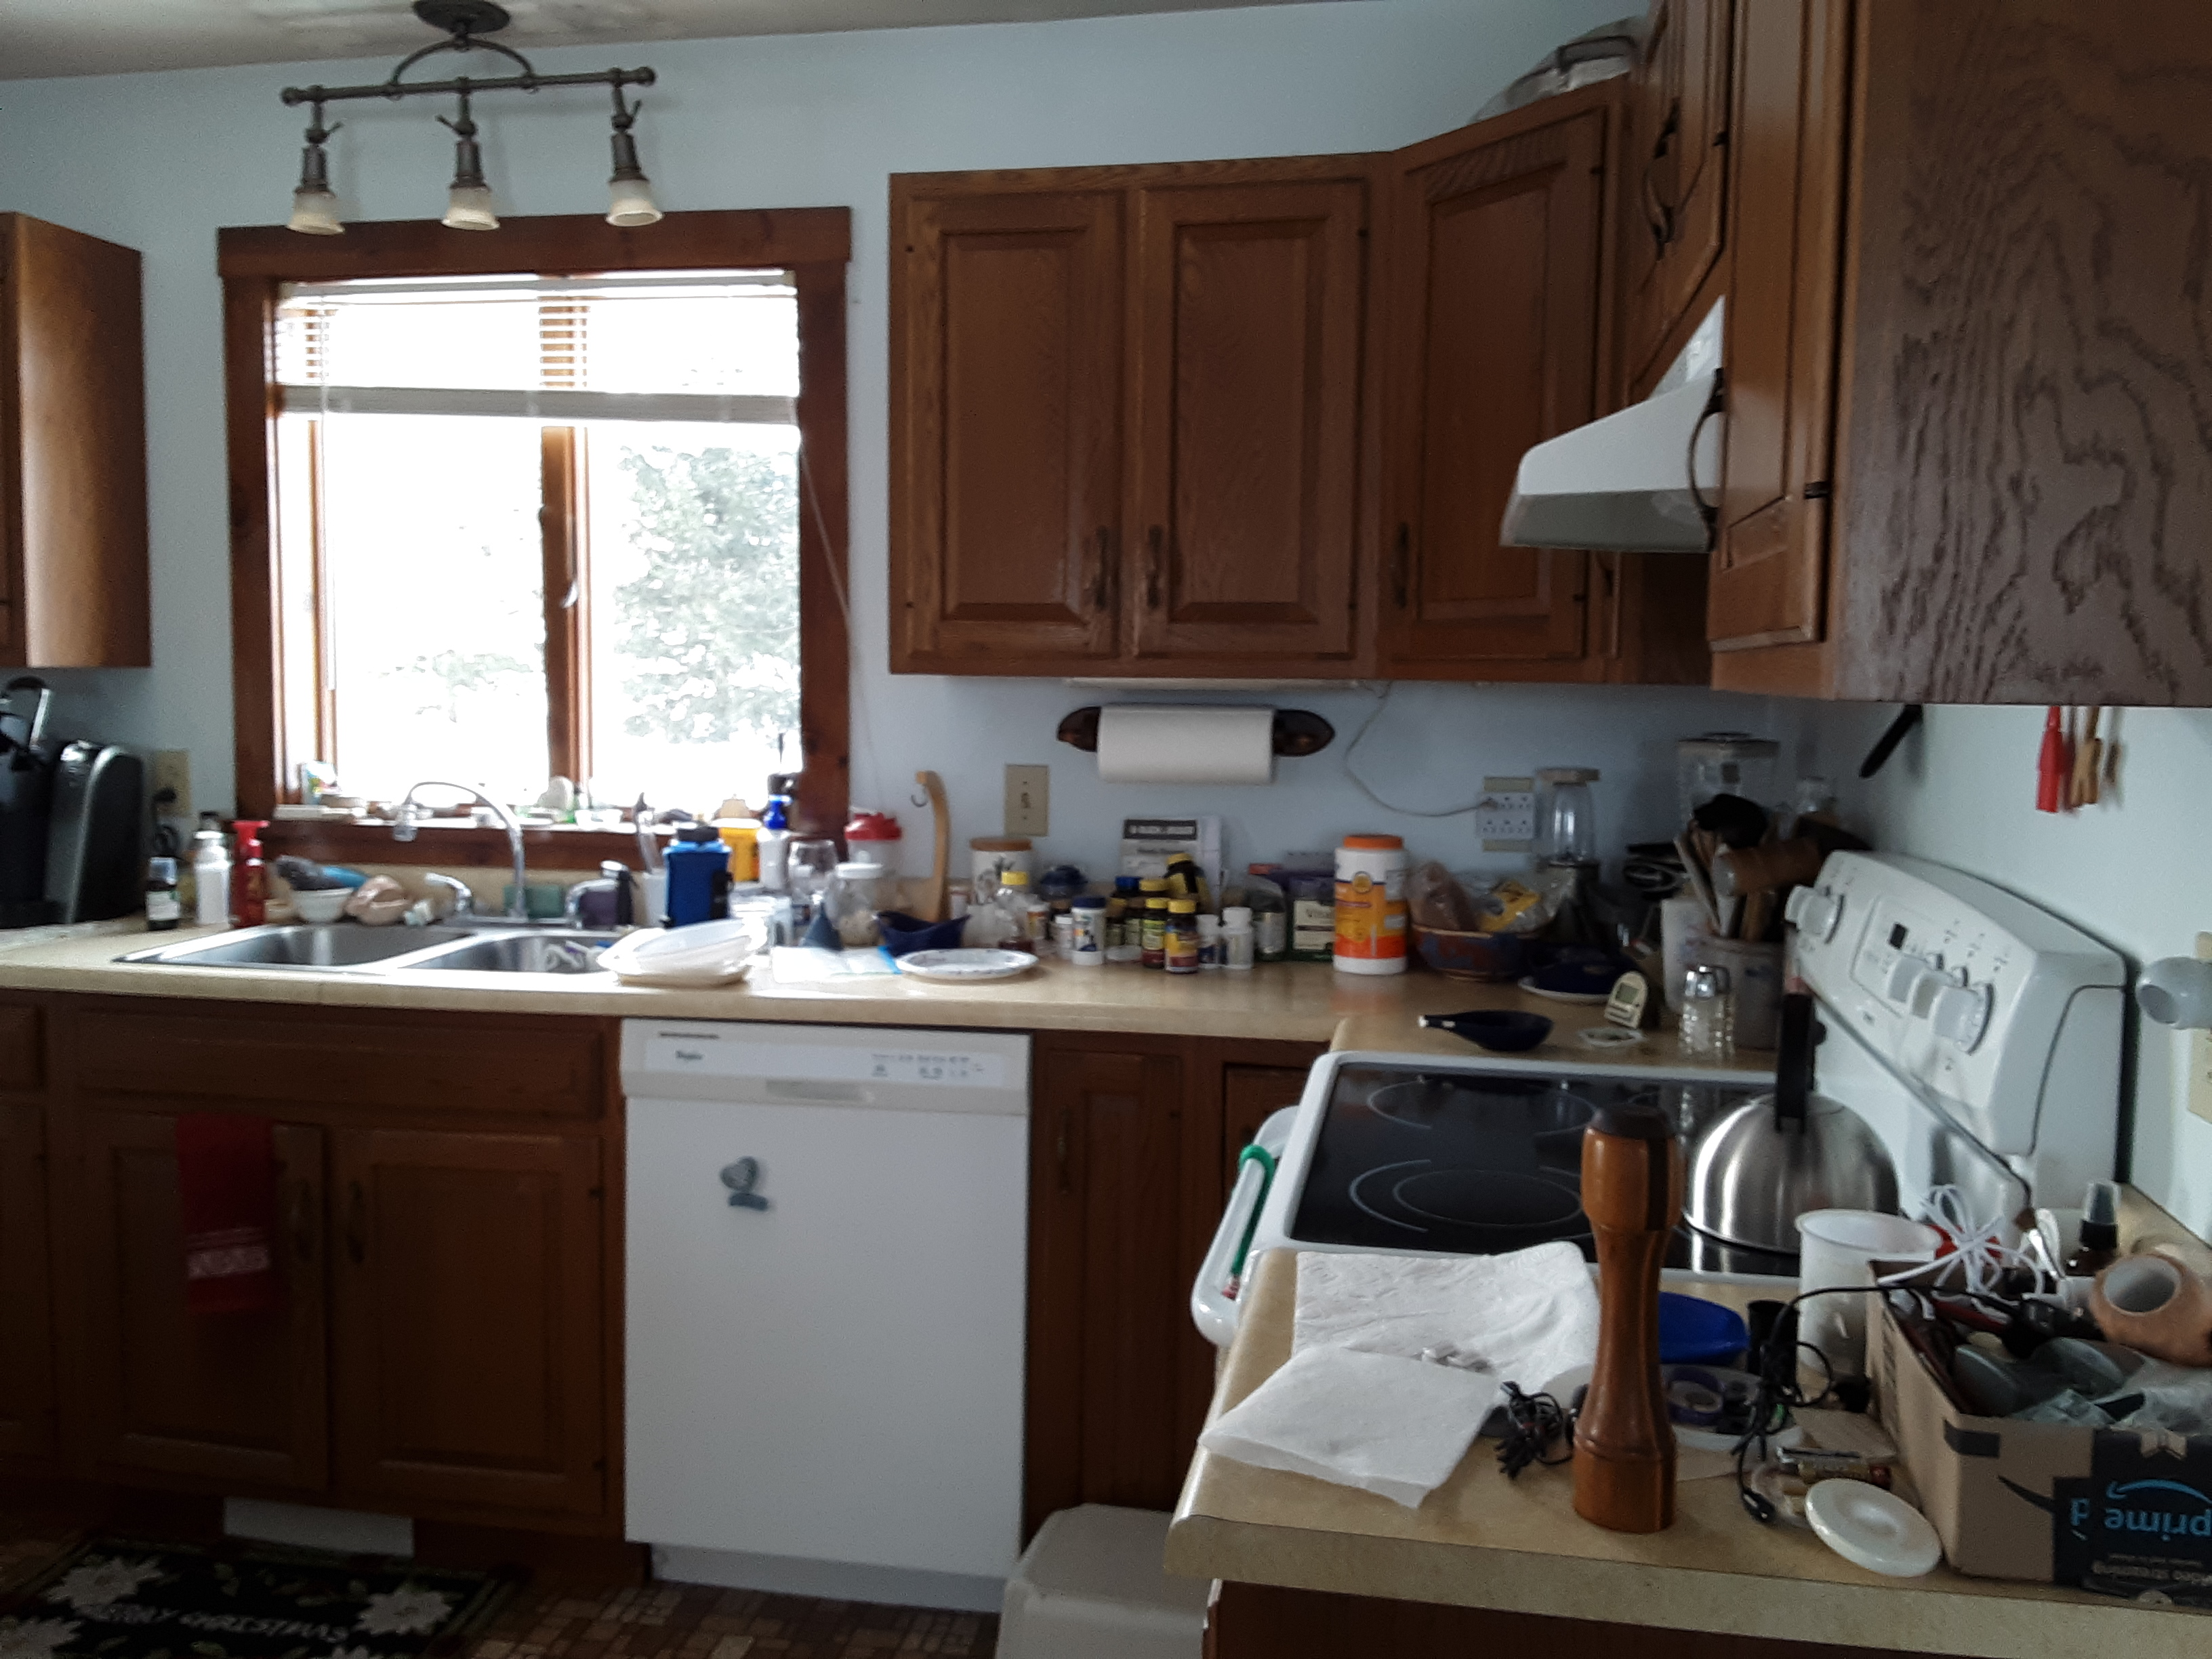 Part of the kitchen counter before we cleared its clutter